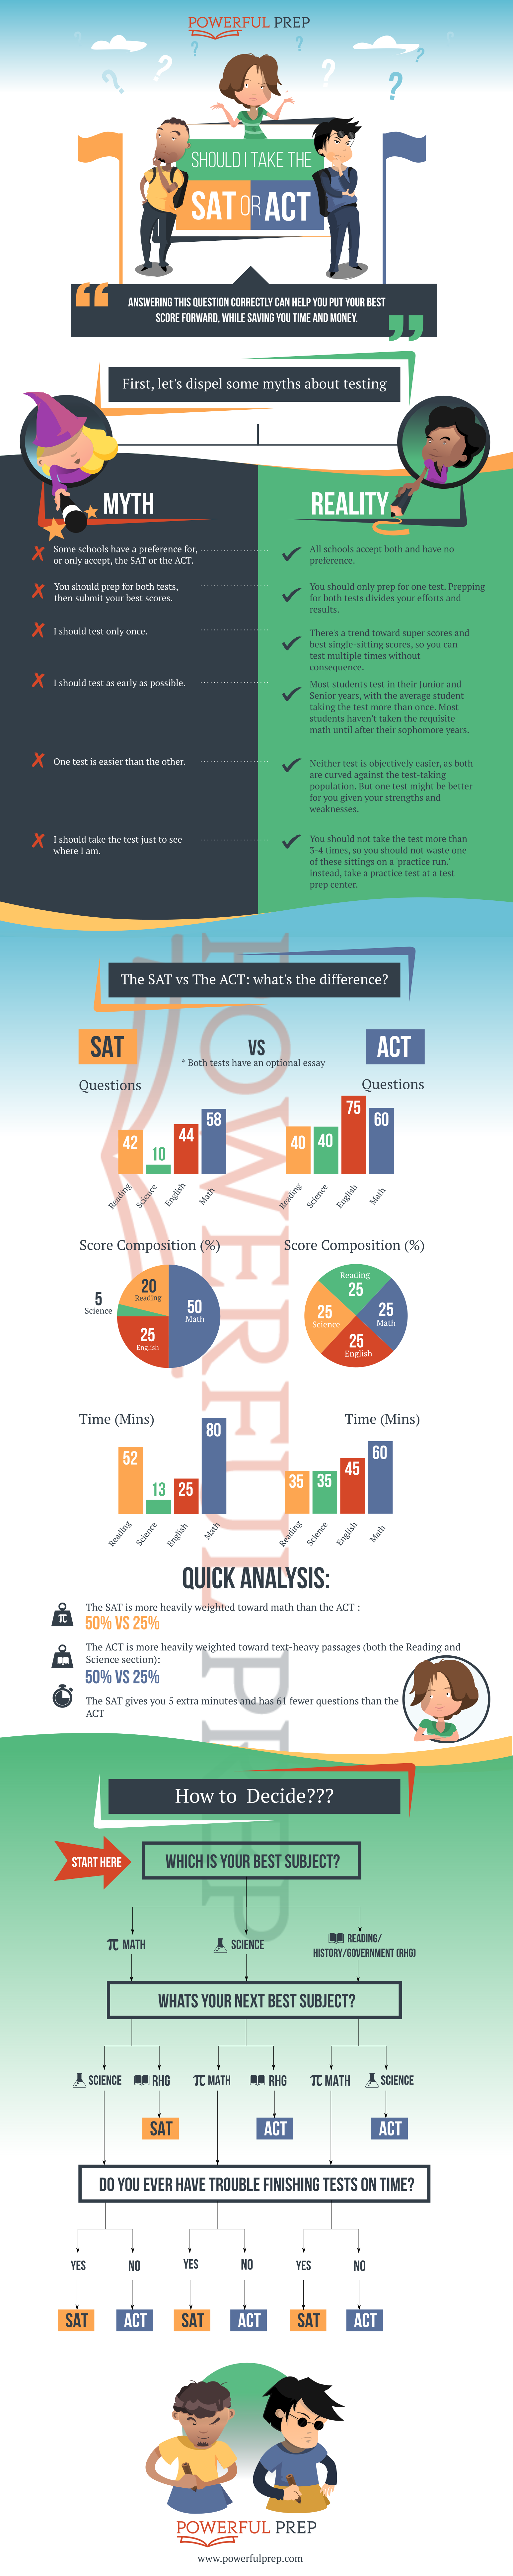 SATvsACT Infographic